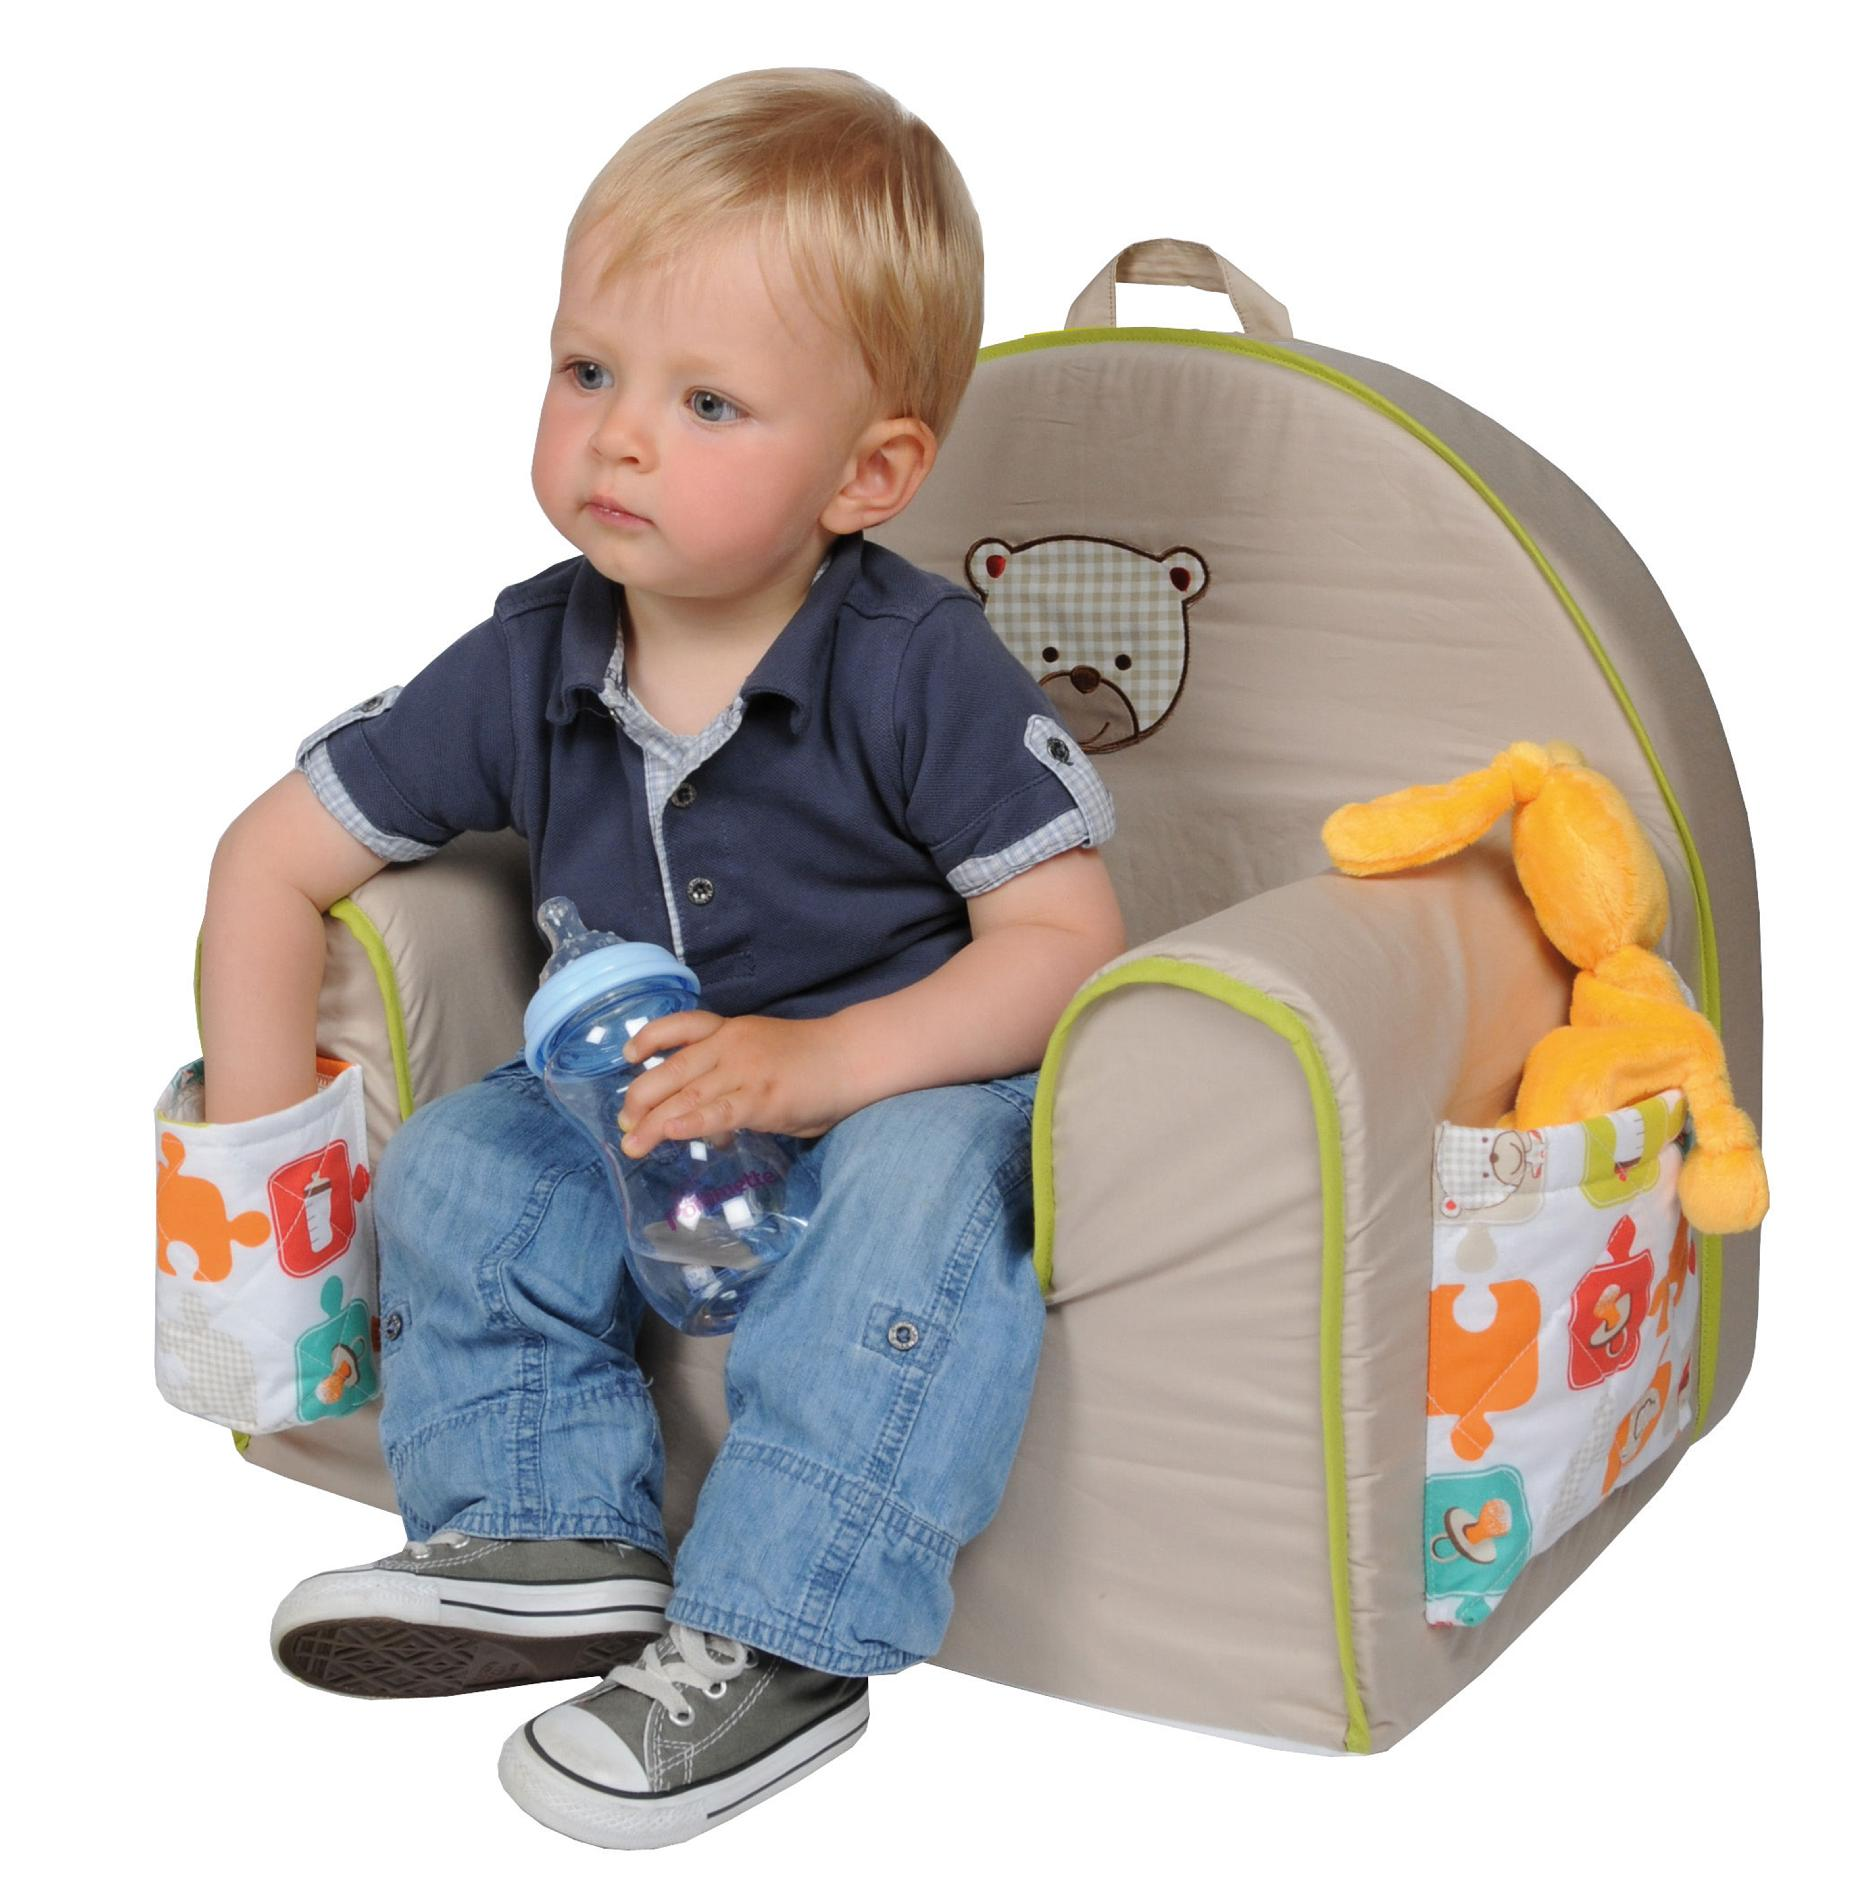 Tineo By Candide Baby Group Toddler Padded Armchair With